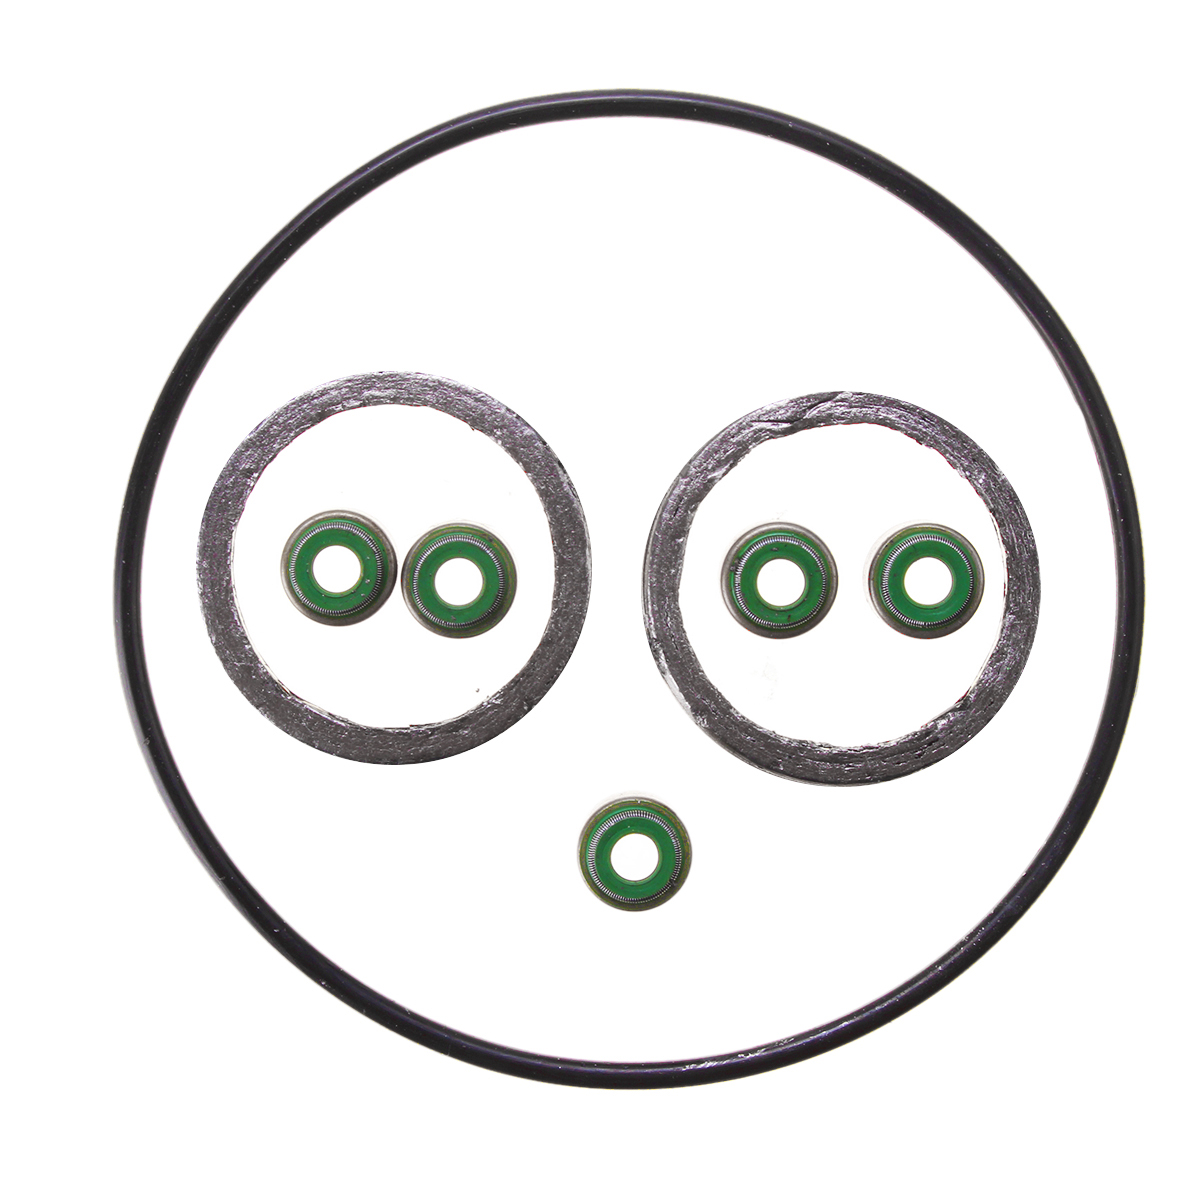 top end head gasket kit for yamaha raptor 700 700r rhino